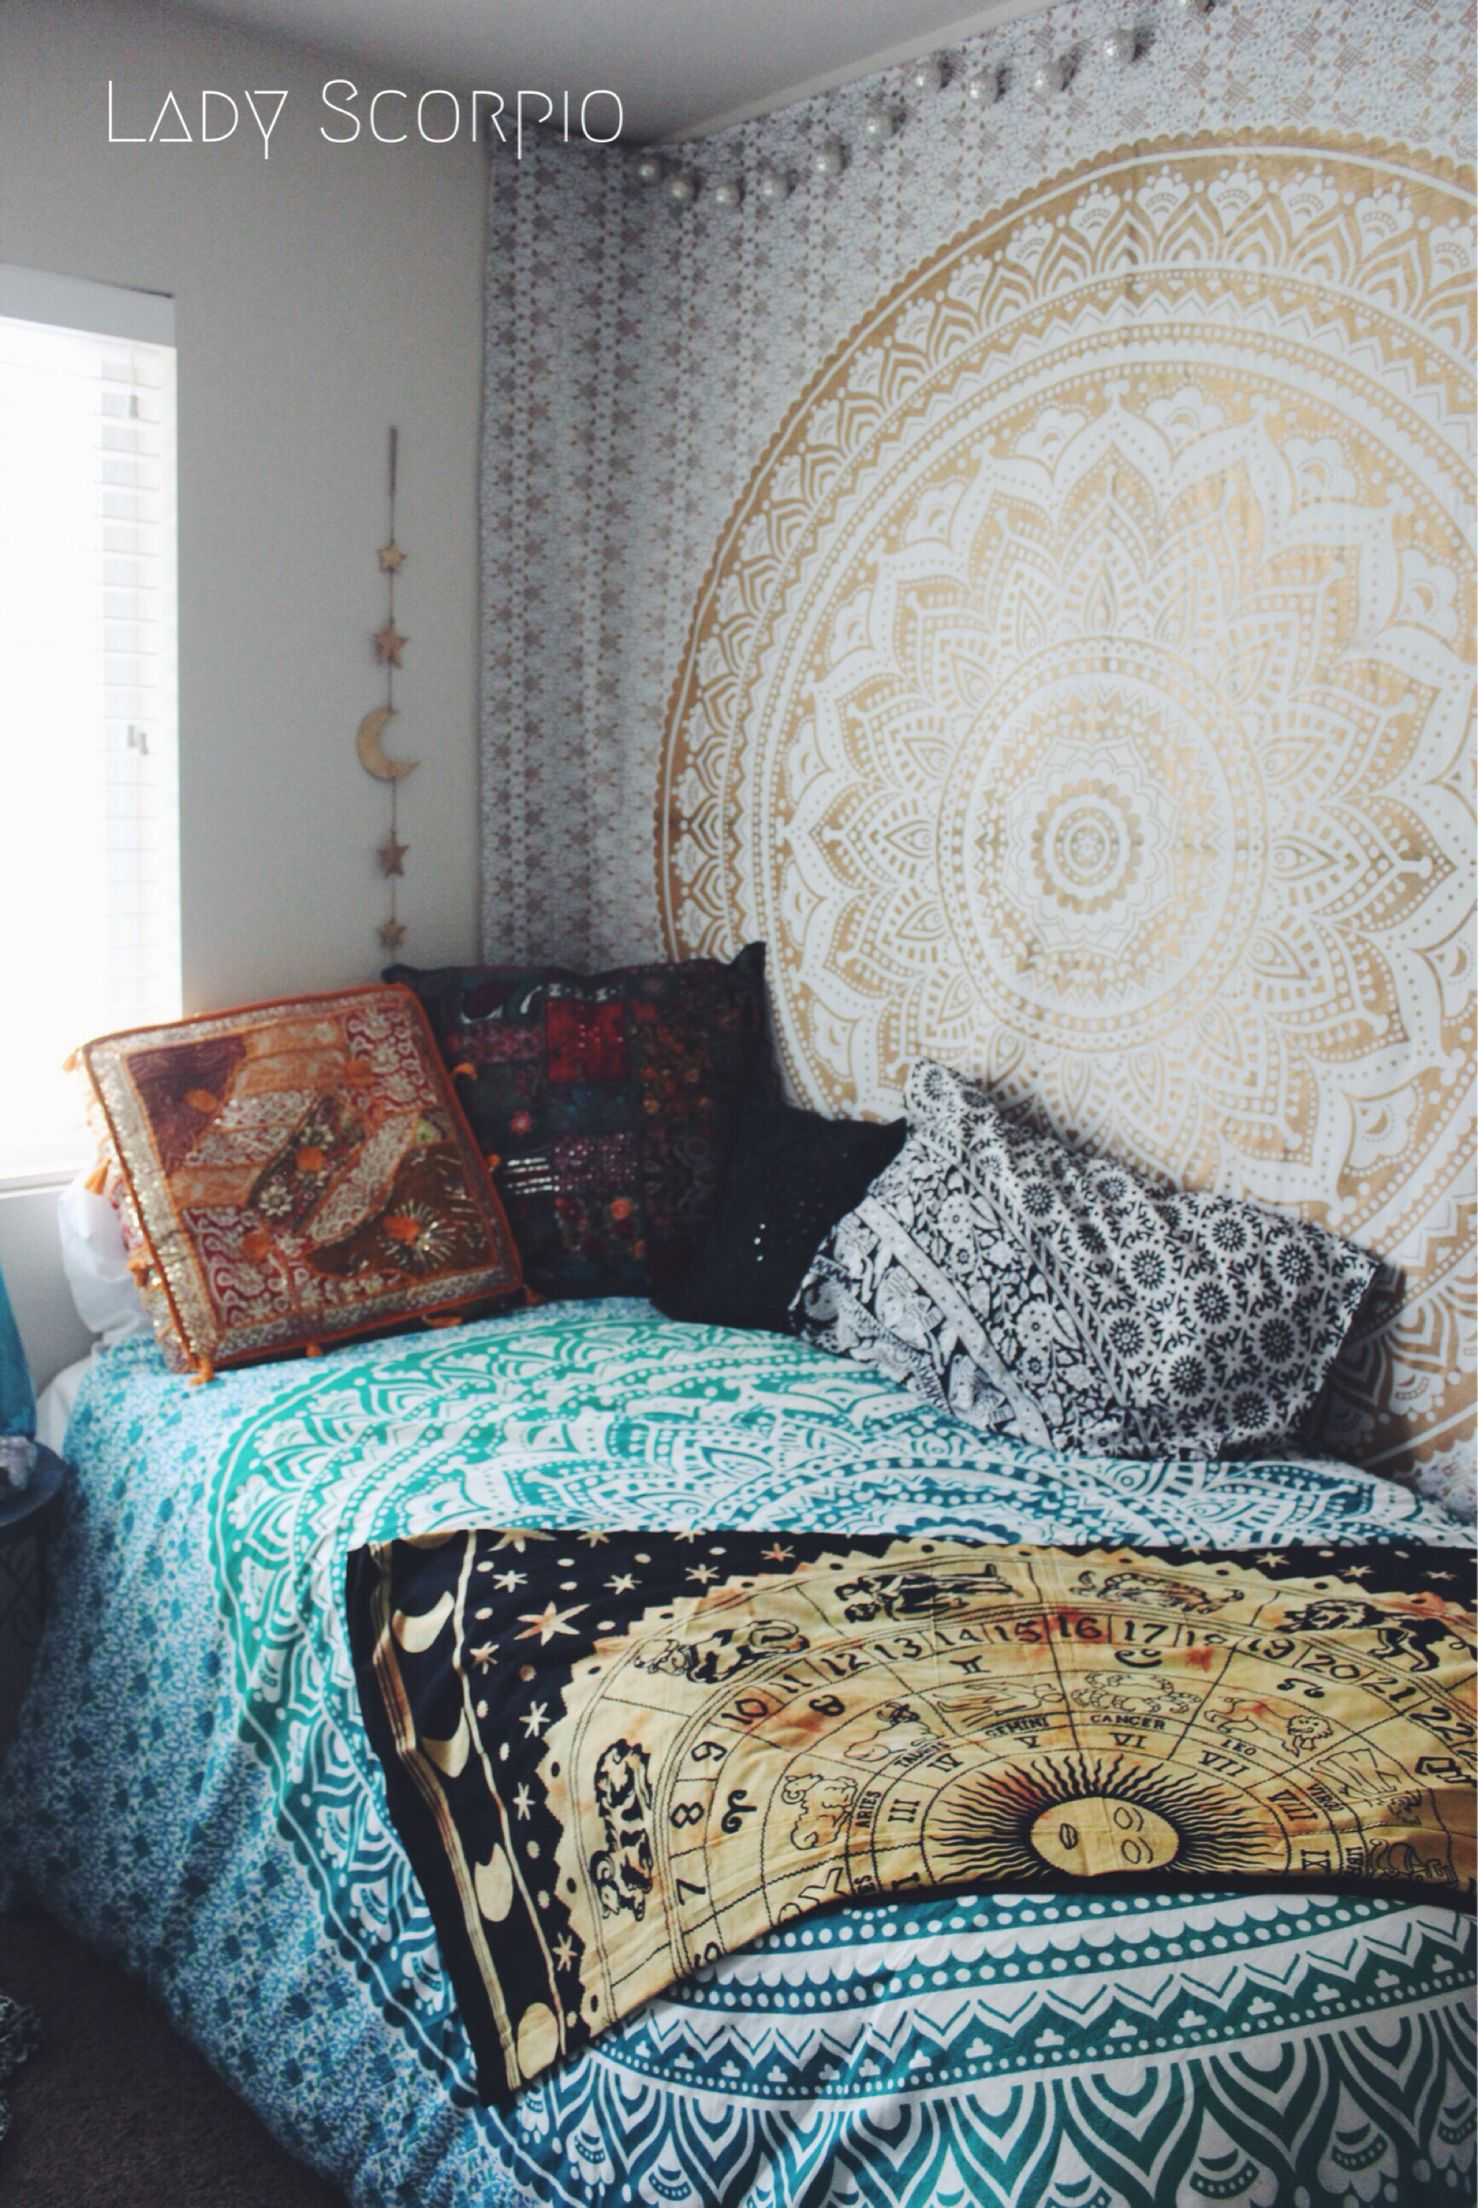 Lady Scorpio Bohemian Bedroom Mandalas Amp Decor Inspiration